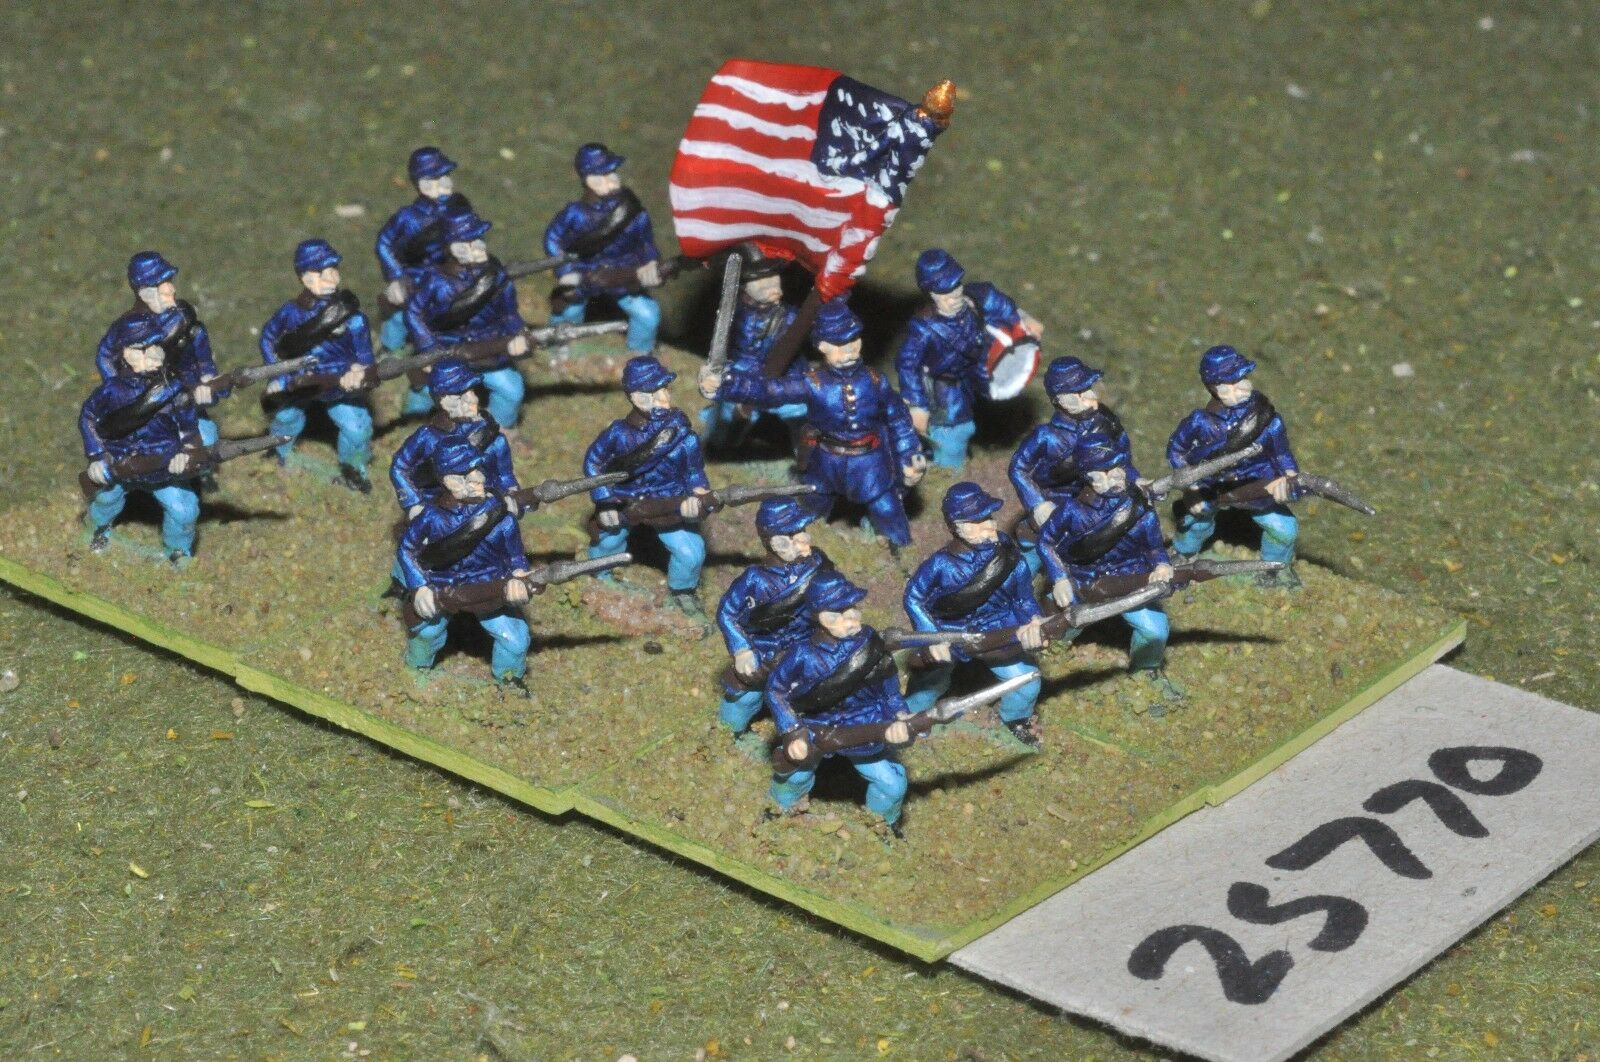 15mm ACW   union - regt. 18 figures - inf (25770)